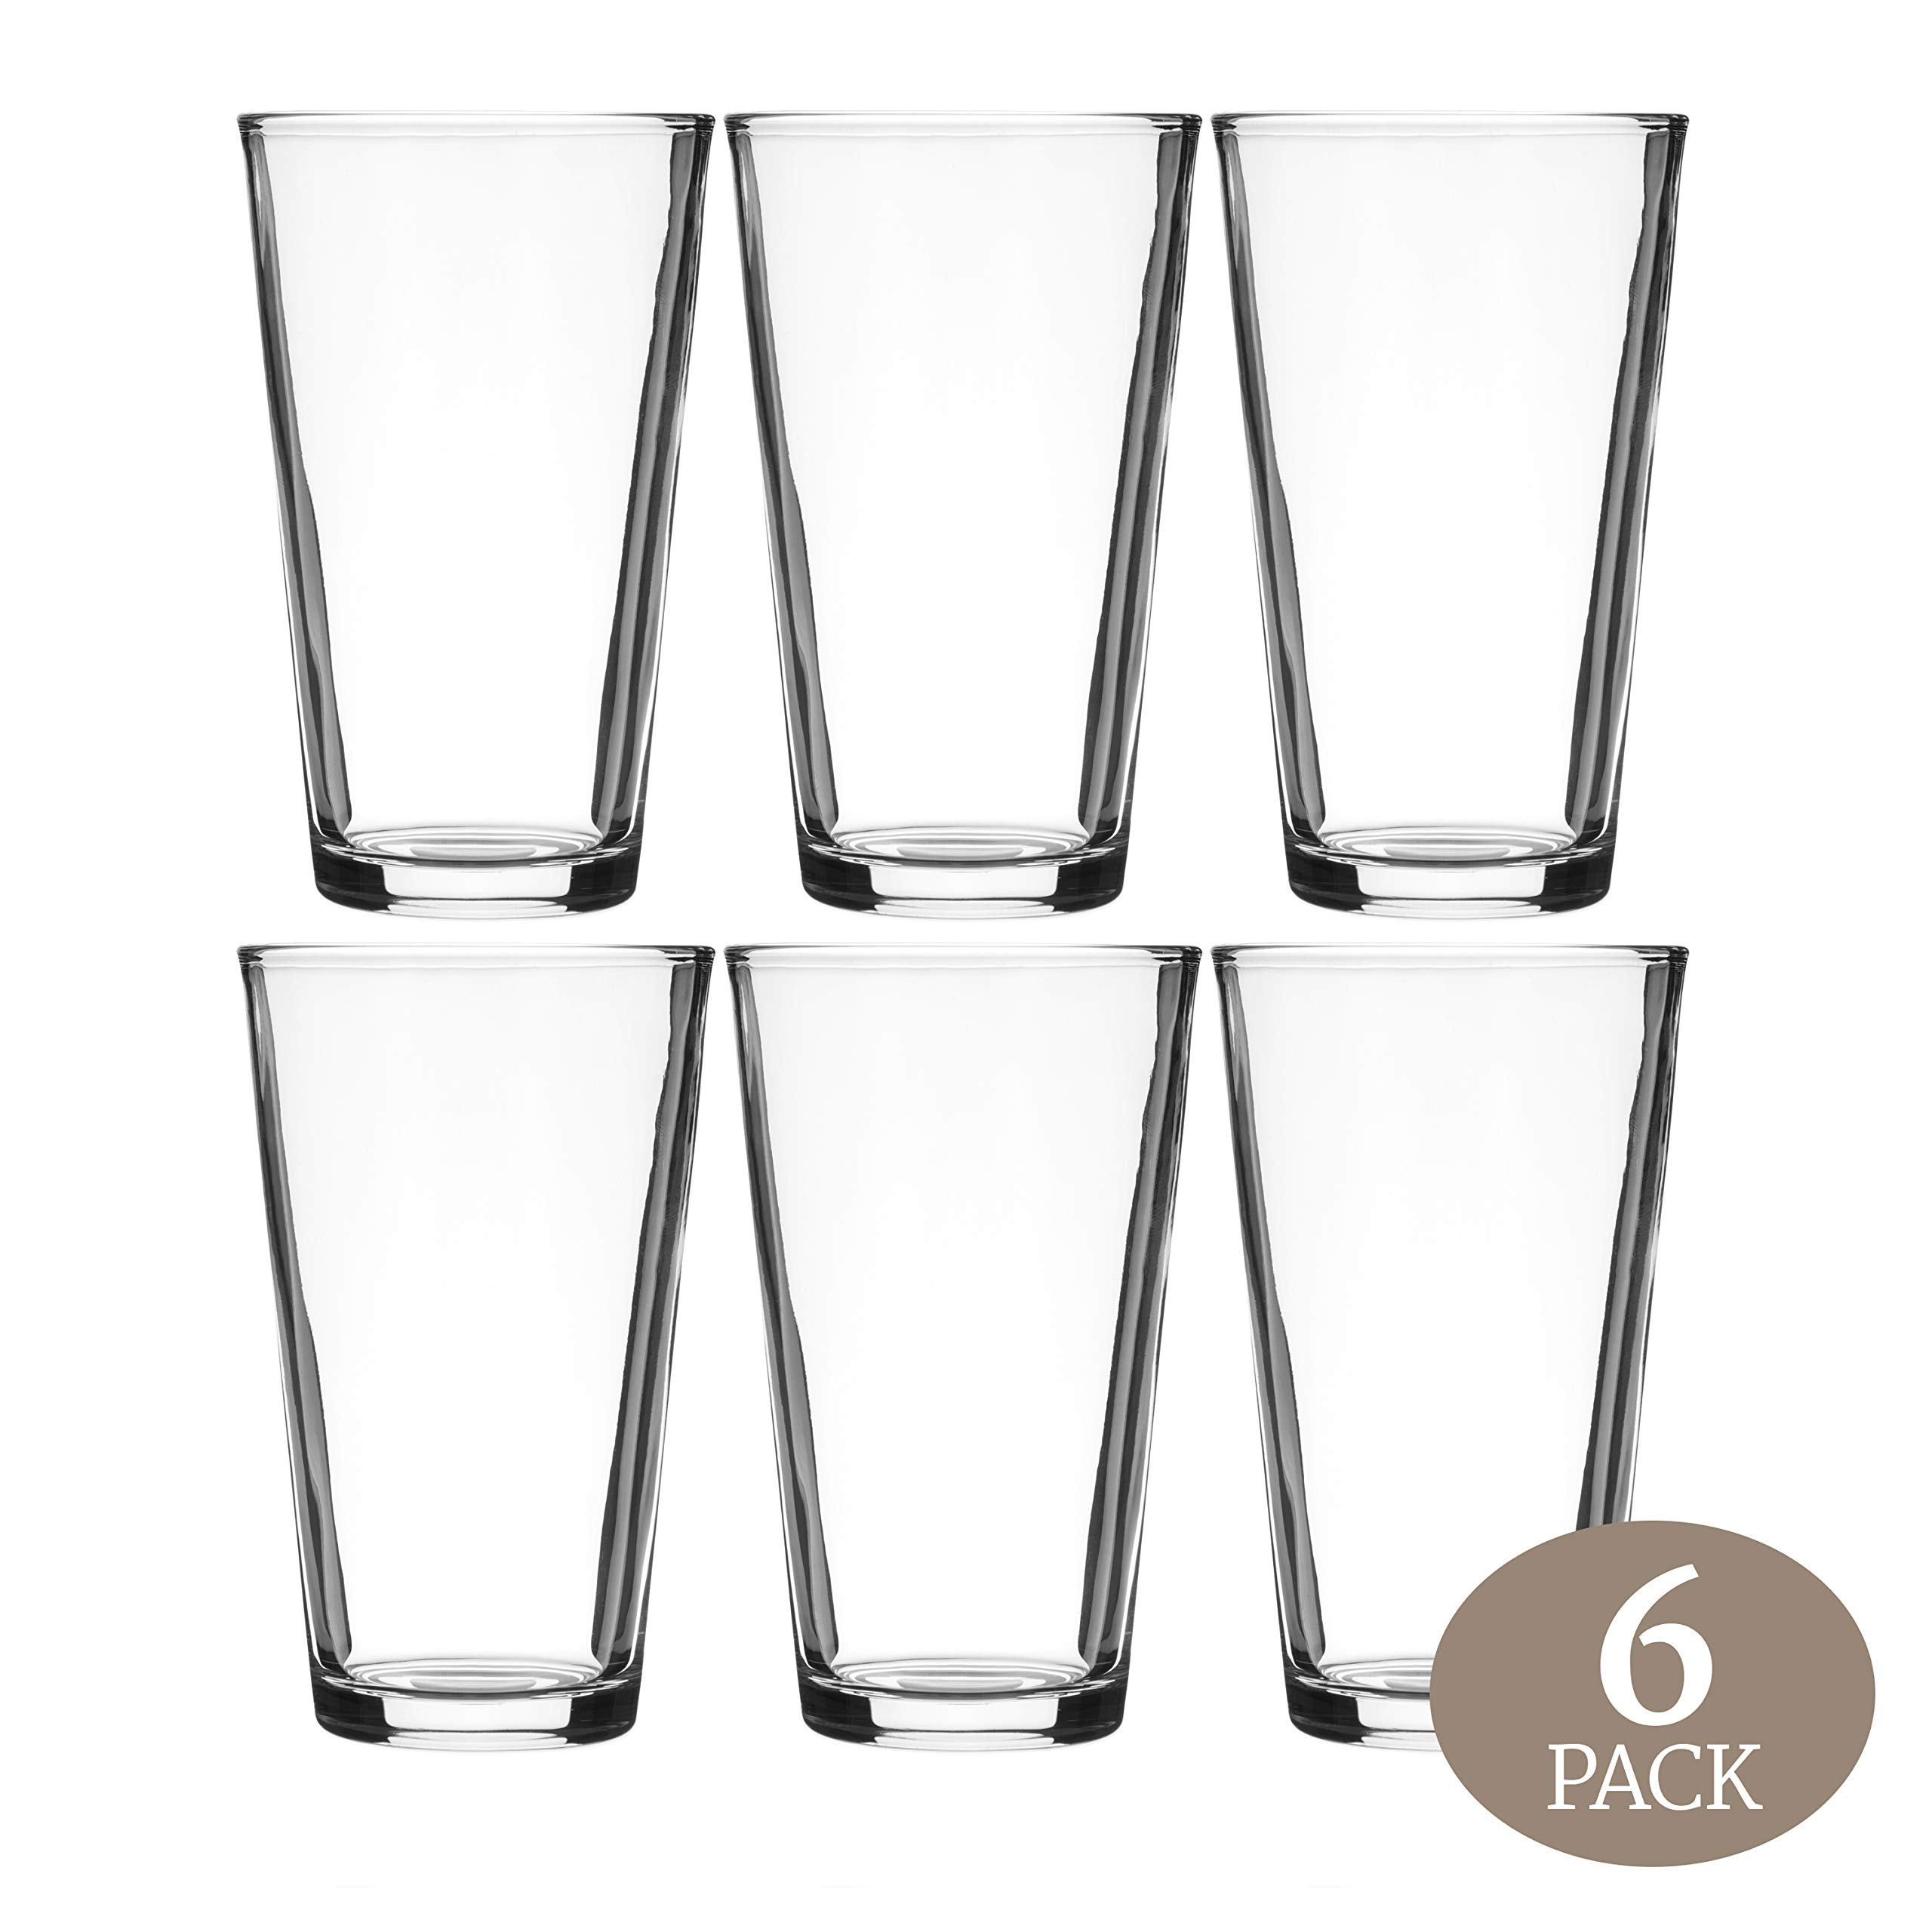 Element Drinkware Beer Pint Glass 16 Ounce - Versatile Cocktail Shaker Glass - Perfect for the Pub, Home Bar, or Everyday Use - Ultra Clear Strong Rim Tempered Mixing Glass - Pack of 6